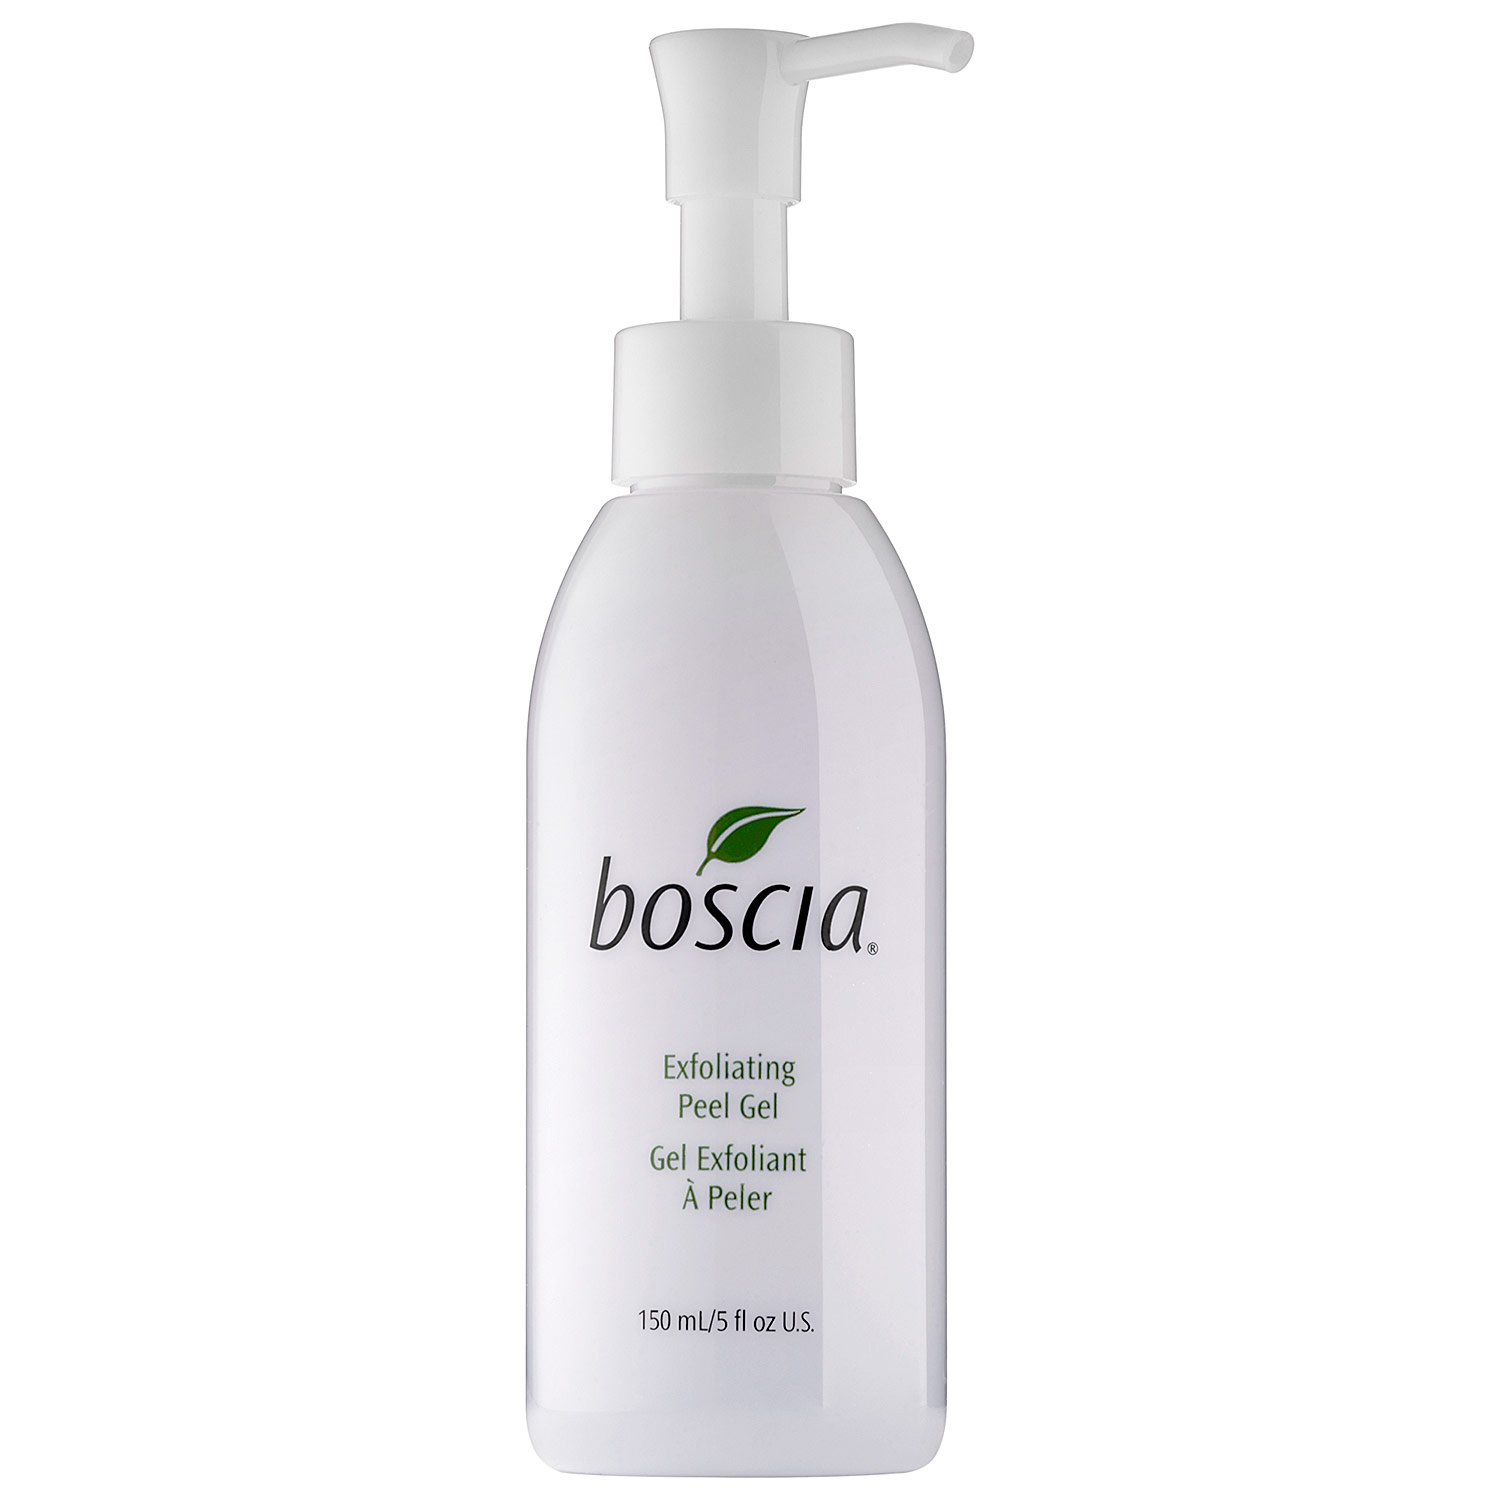 <p>BOSCIA Exfoliating Peel Gel</p>